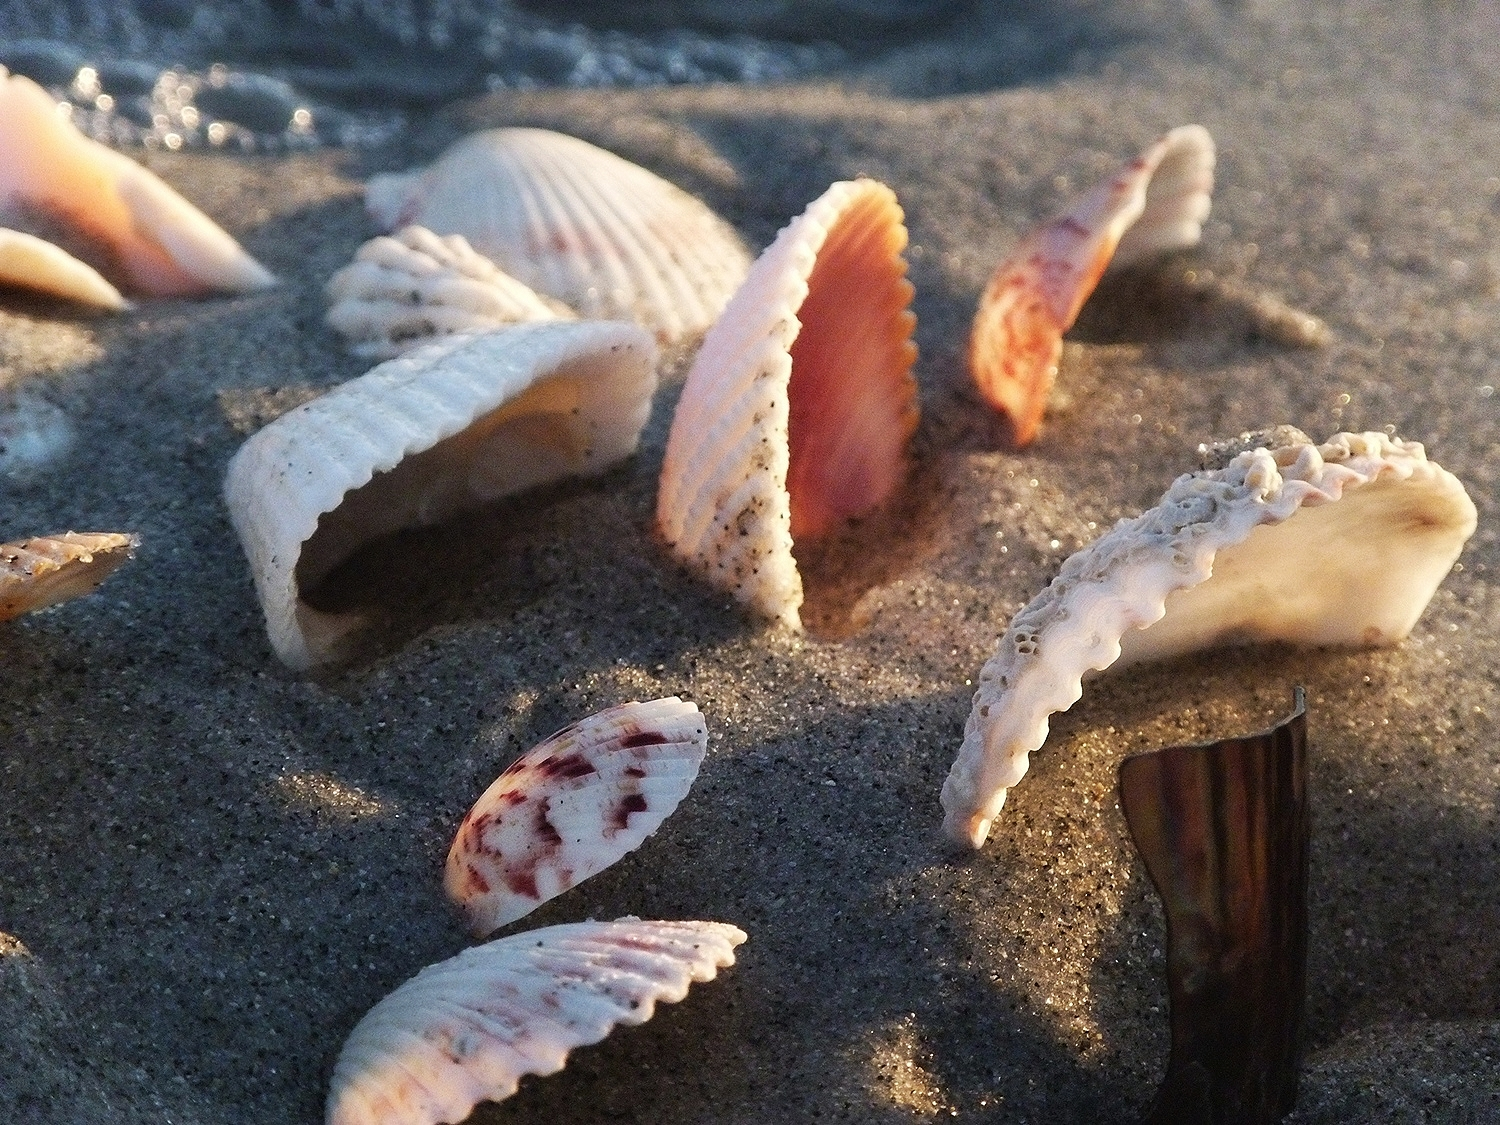 Shells supported in the sand